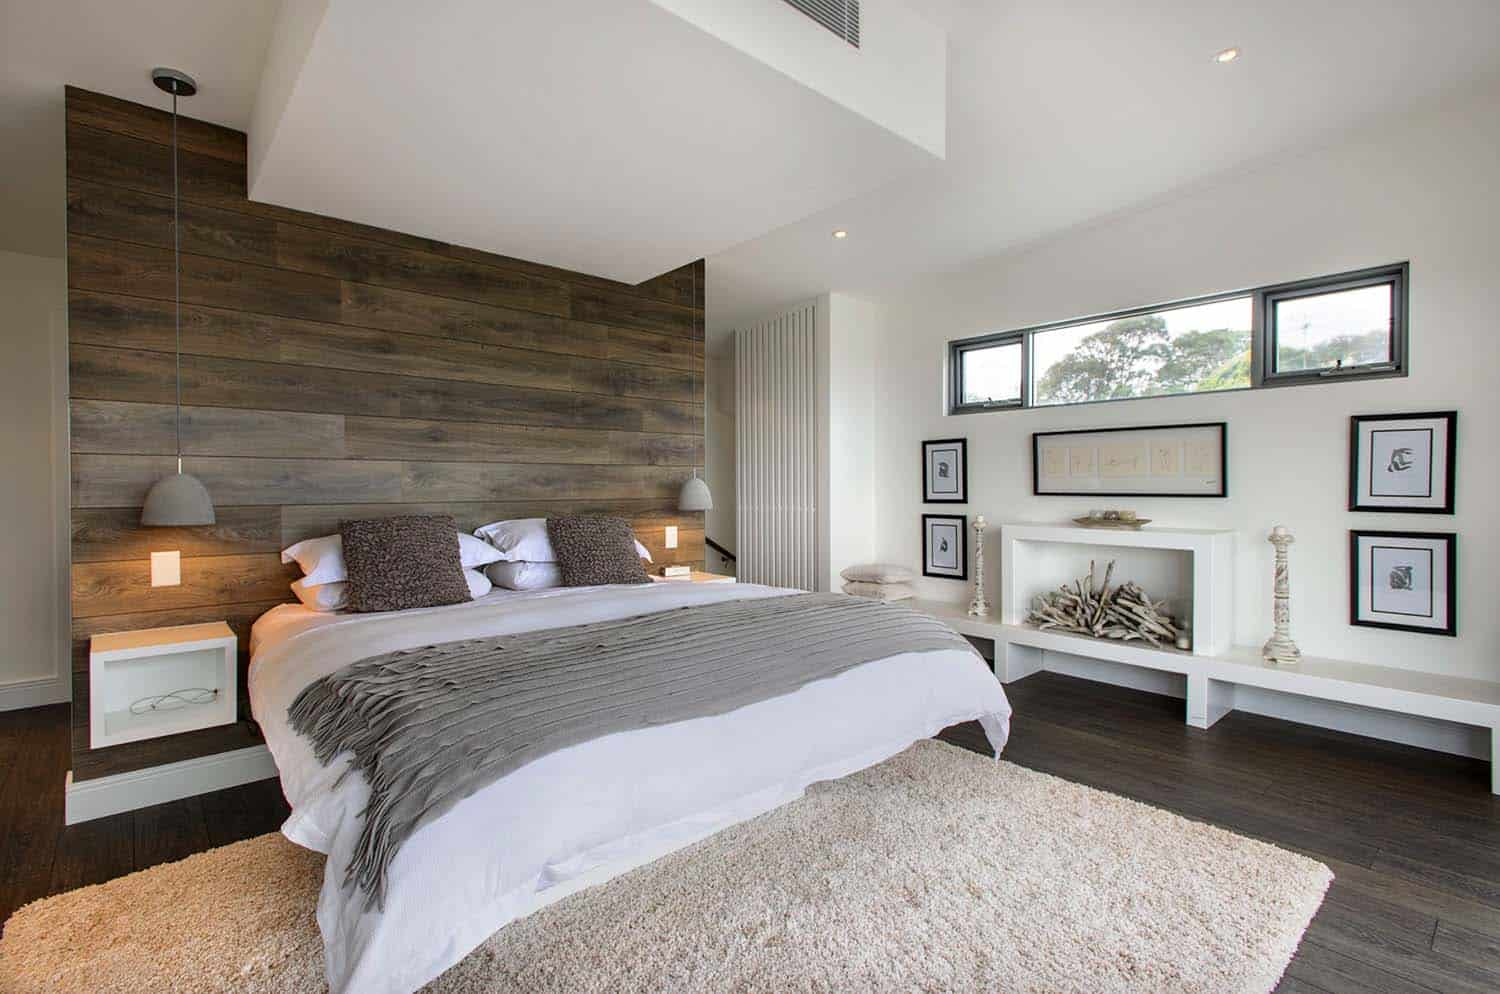 Renovated Contemporary Home-Capital Building-16-1 Kindesign